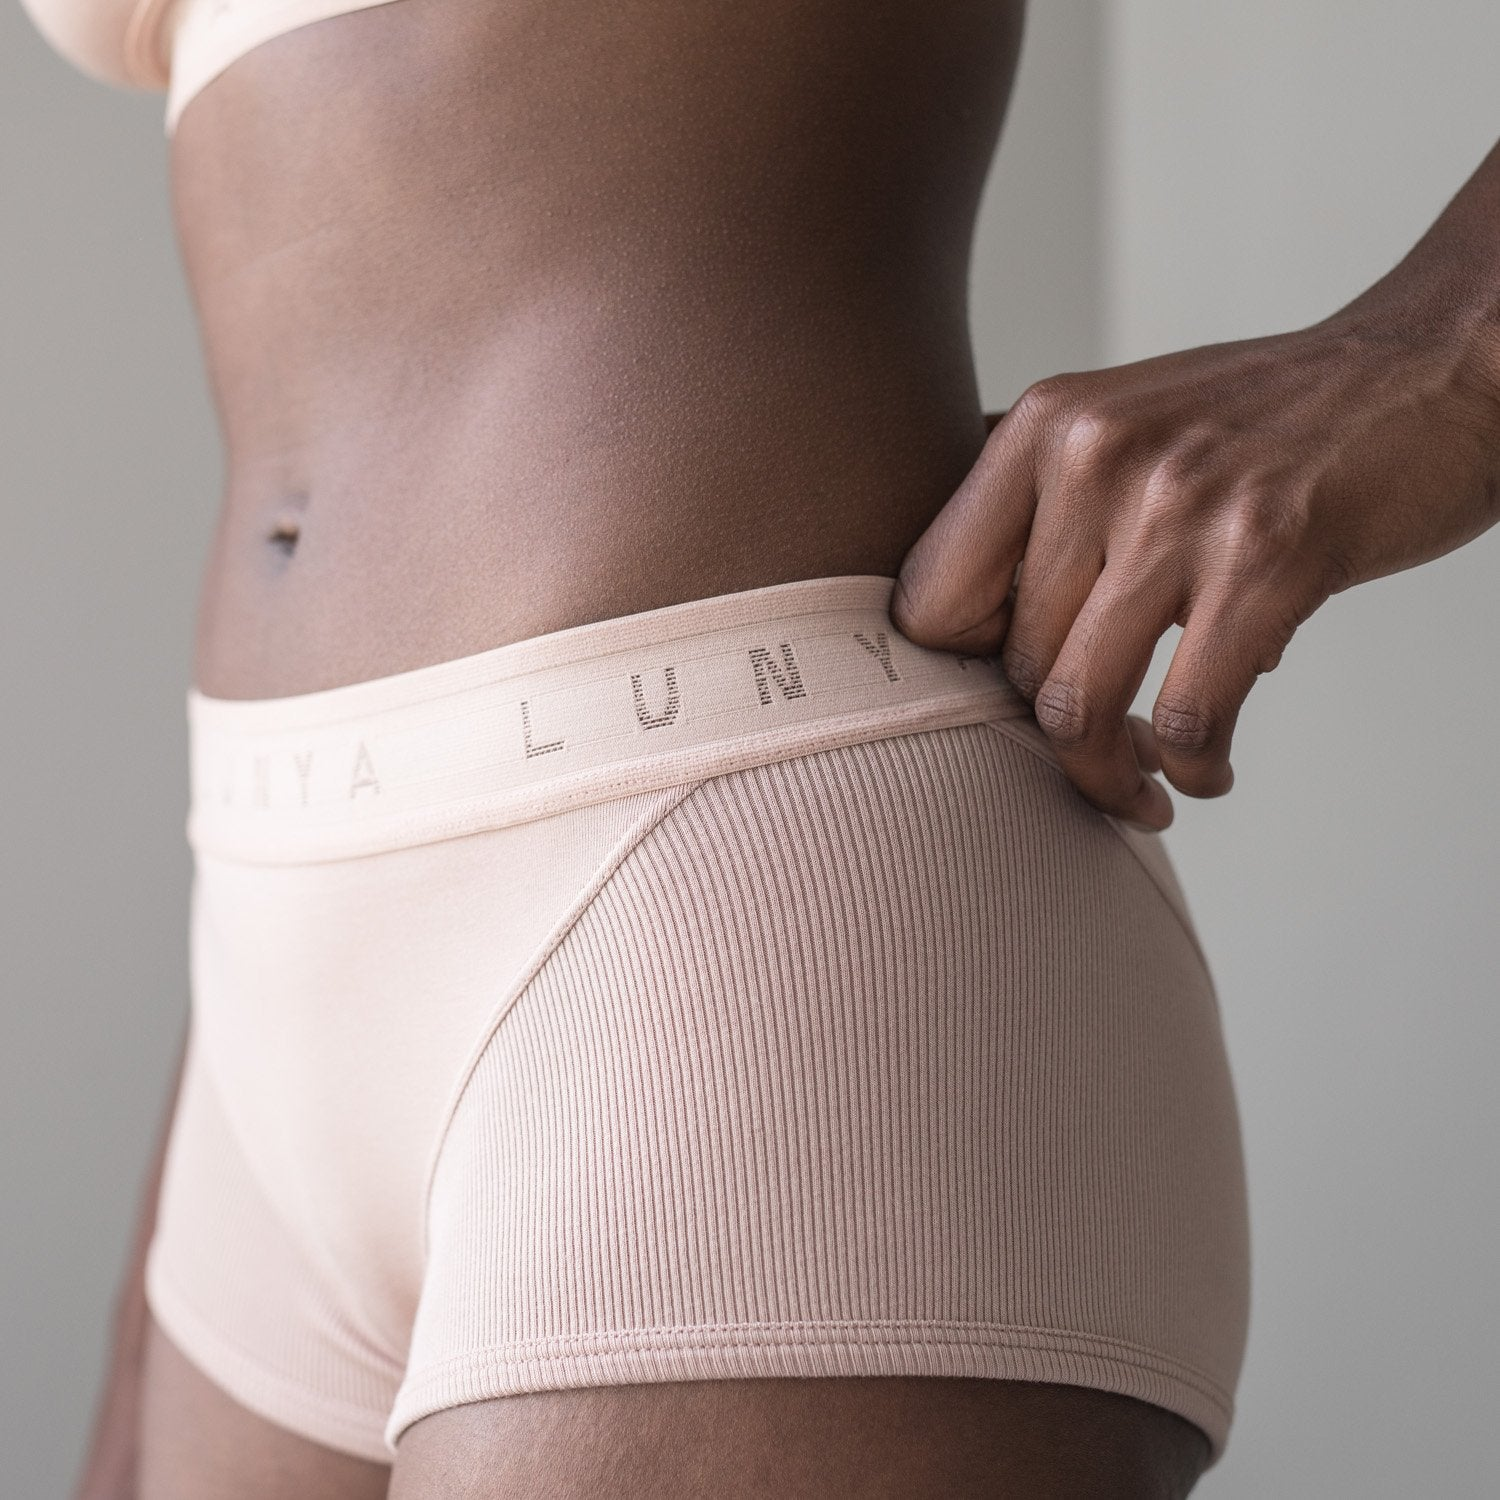 Lunya Sleepwear Supportive Modal Sleep Brief - #Bare/Bare